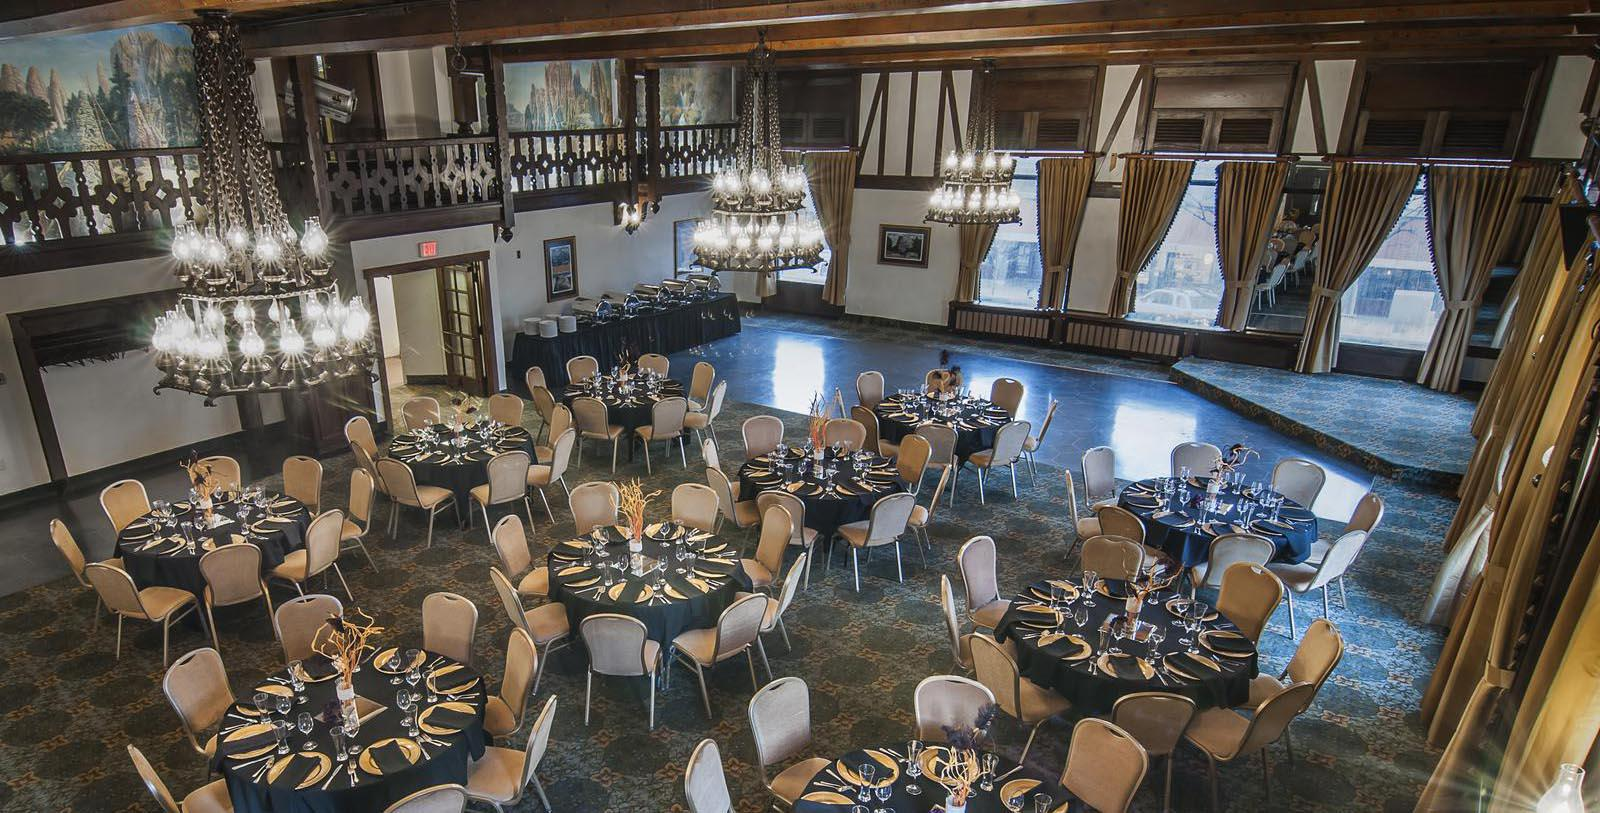 Image of Yesterday's Ballroom, Hotel Alex Johnson in Rapid City, South Dakota, 1928, Member of Historic Hotels of America, Experience